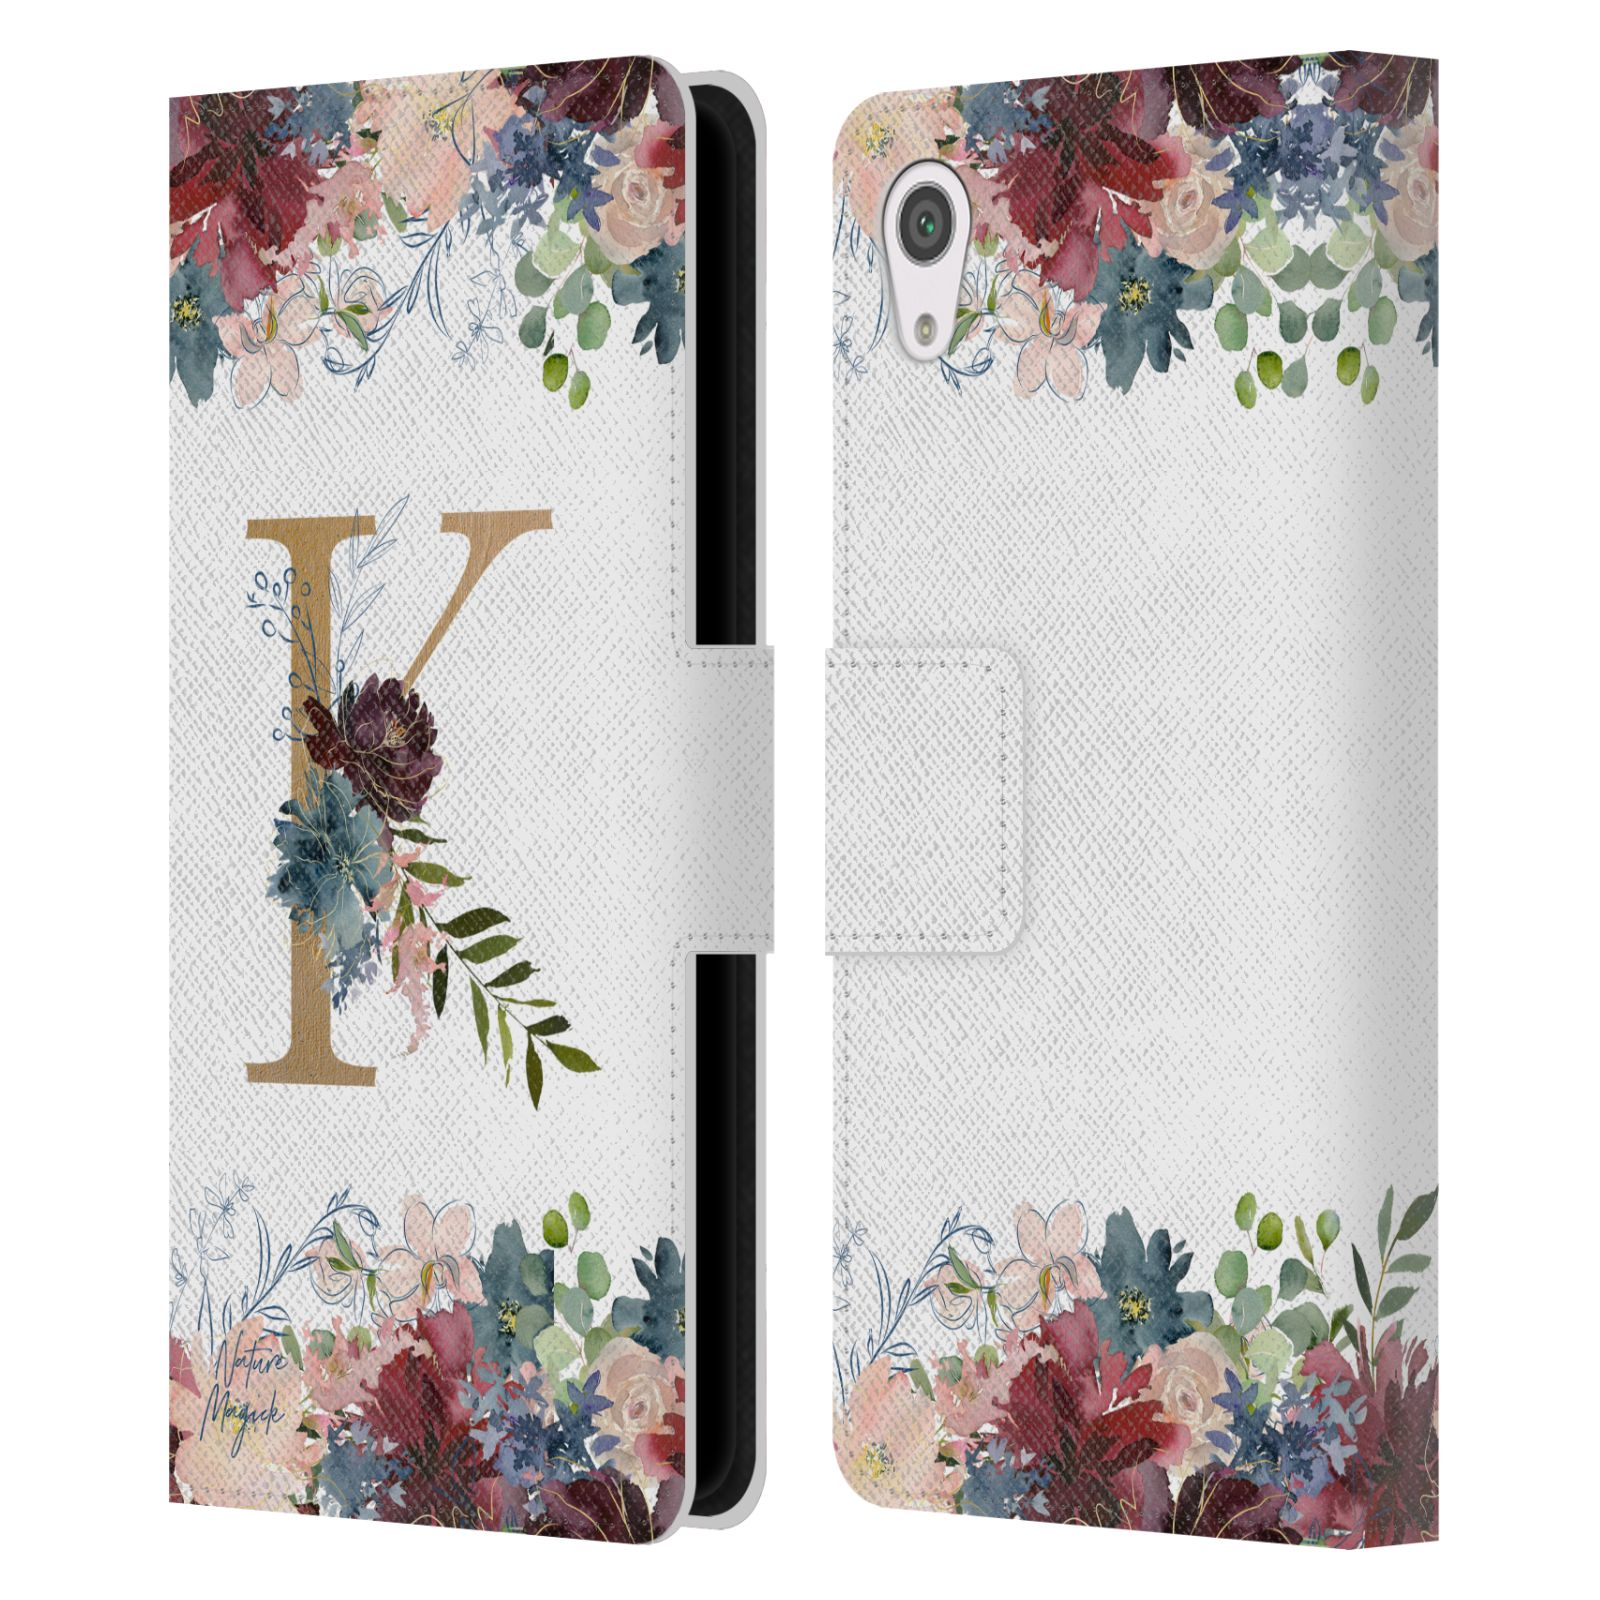 NATURE-MAGICK-FLOWERS-MONOGRAM-FLORAL-GOLD-LEATHER-BOOK-CASE-FOR-SONY-PHONES-1